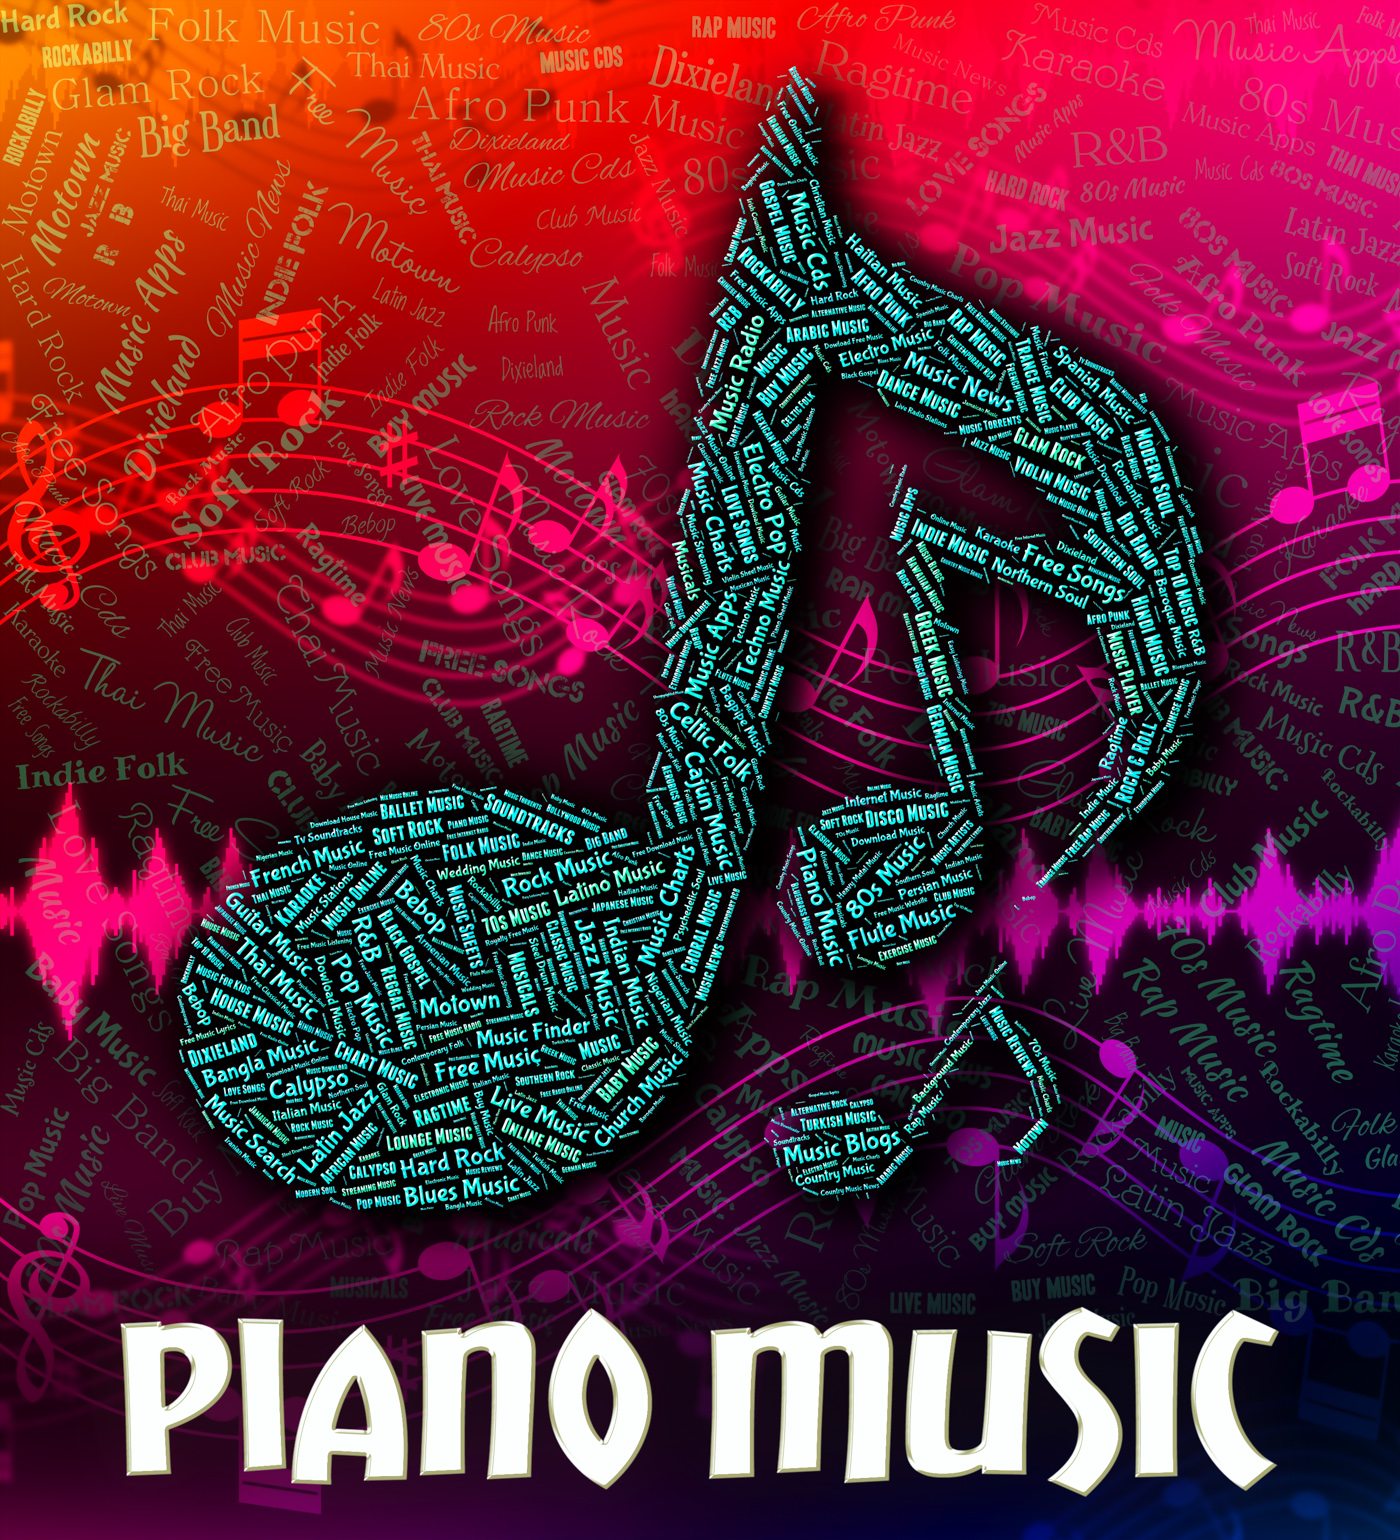 Free photo: Piano Music Represents Keyboard Harmonies And